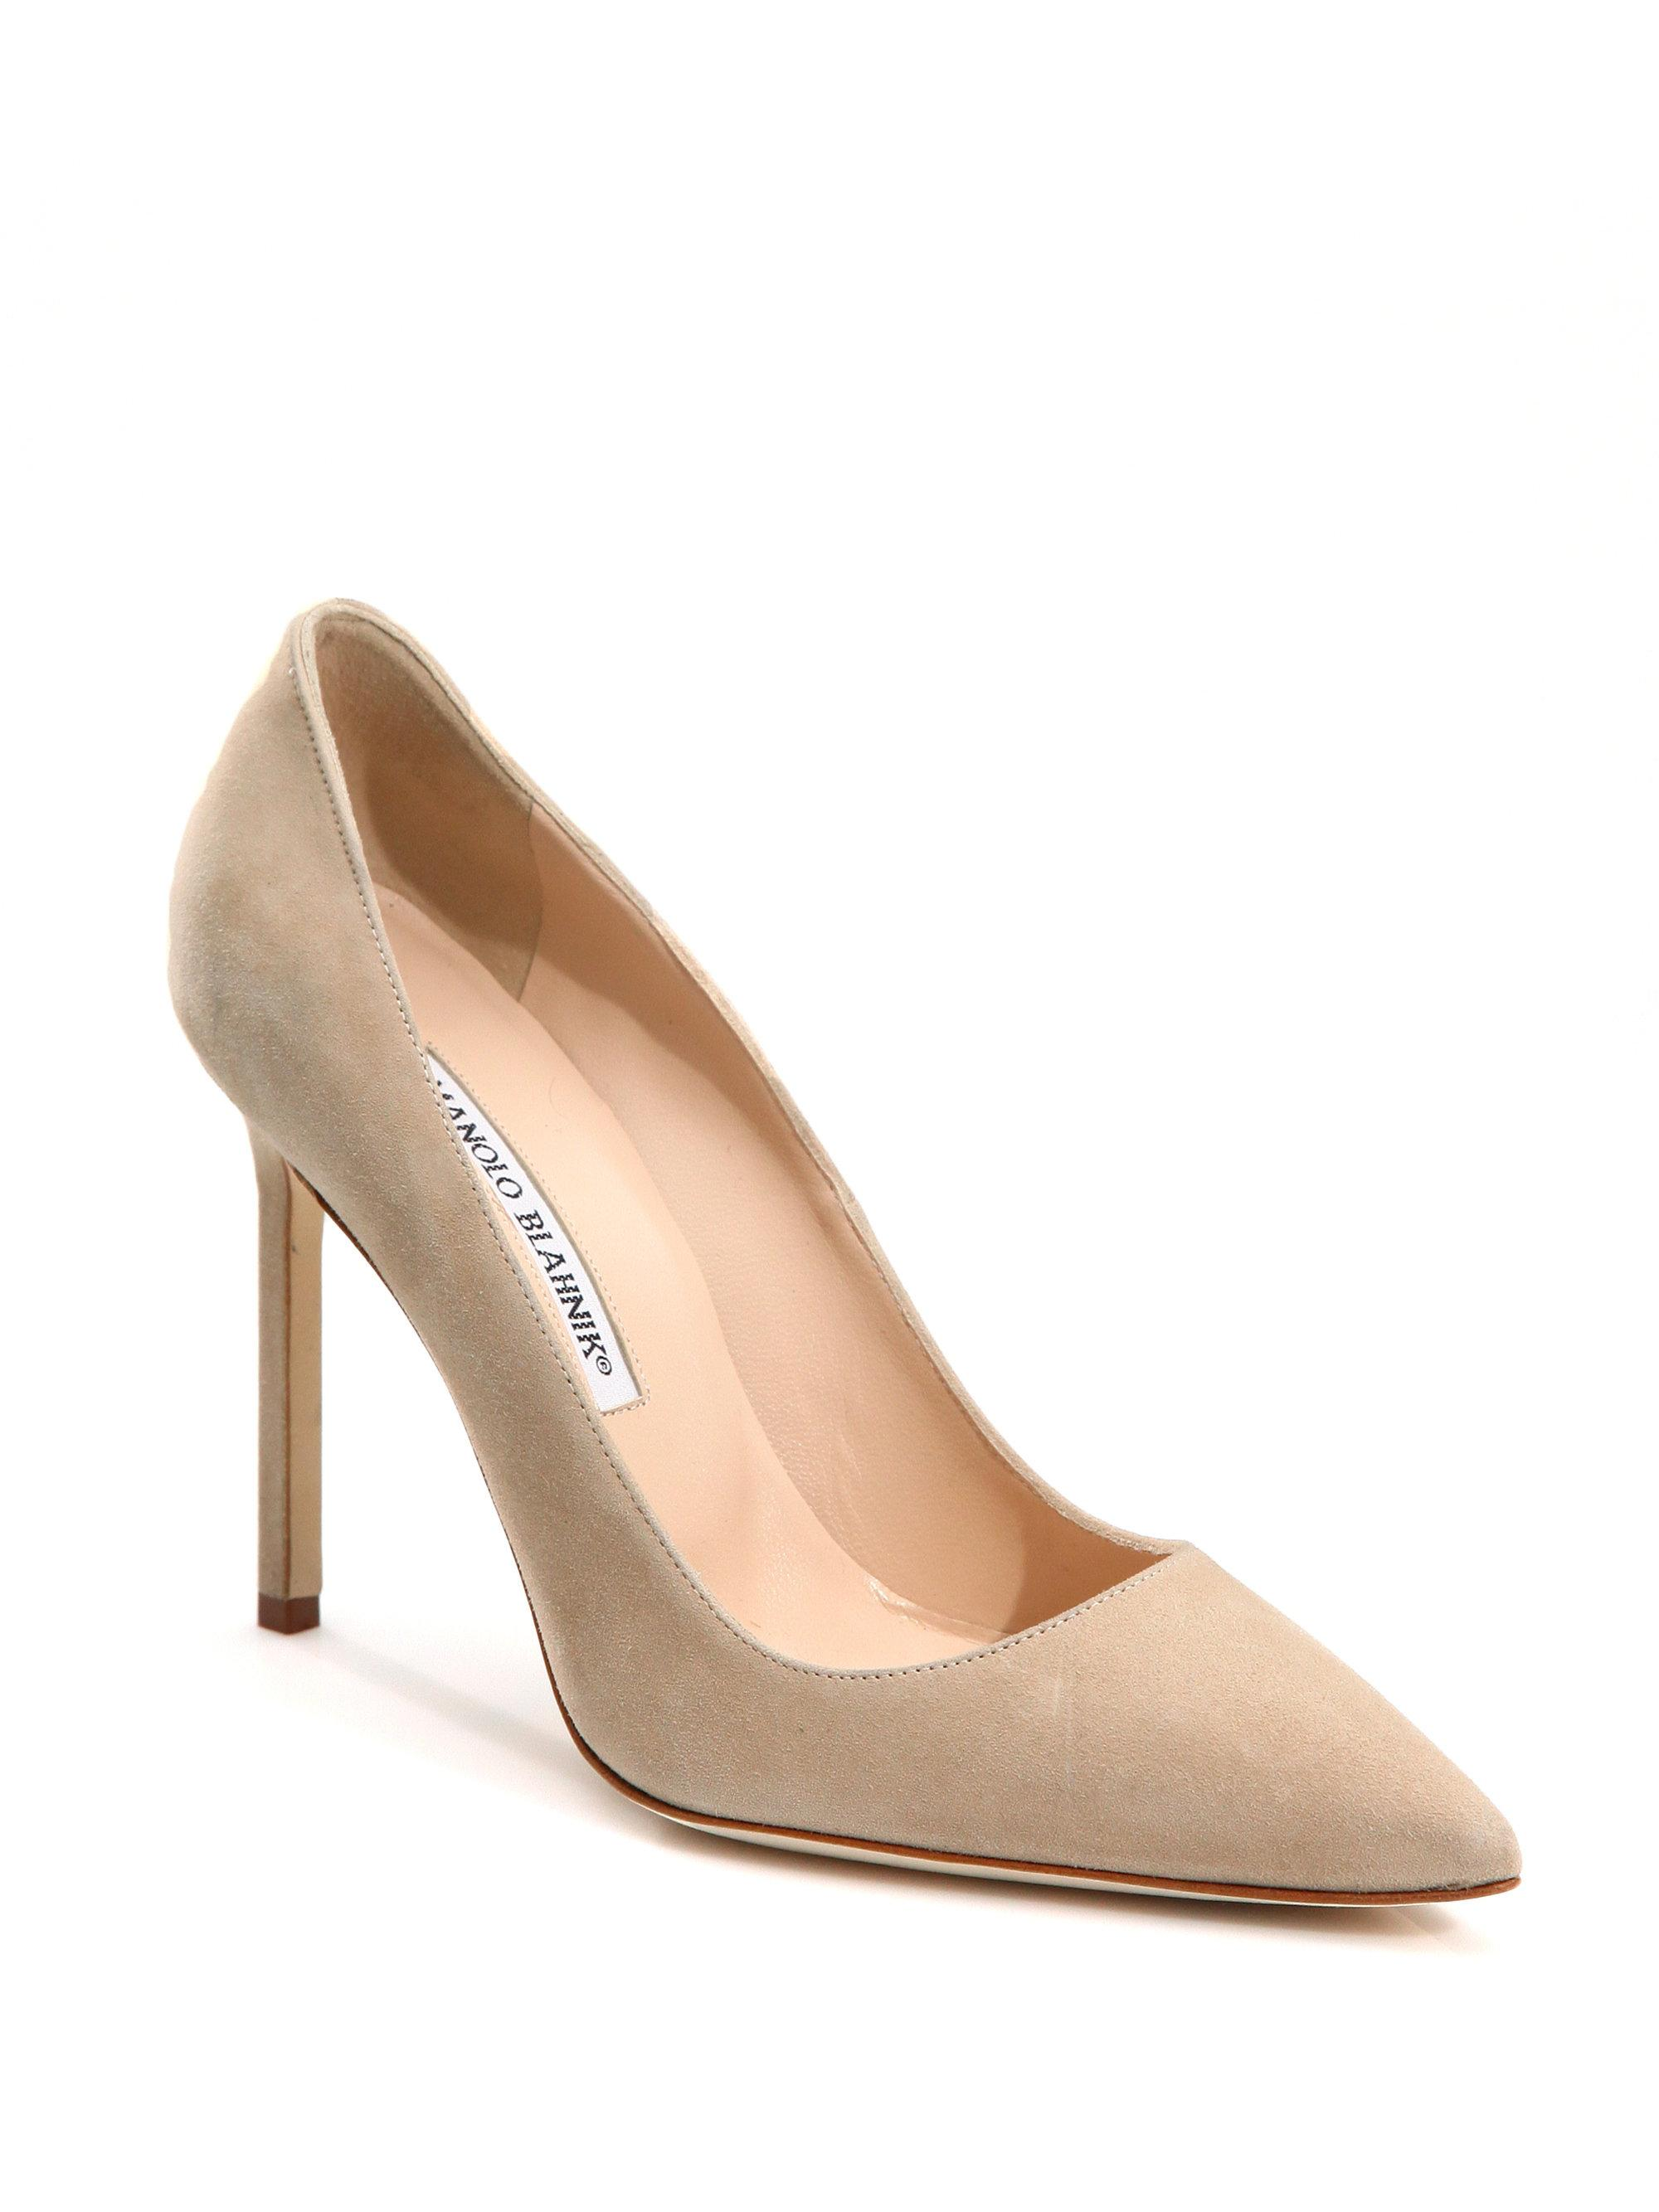 Manolo Blahnik. Women's Natural Bb 105 Suede Point Toe Pumps